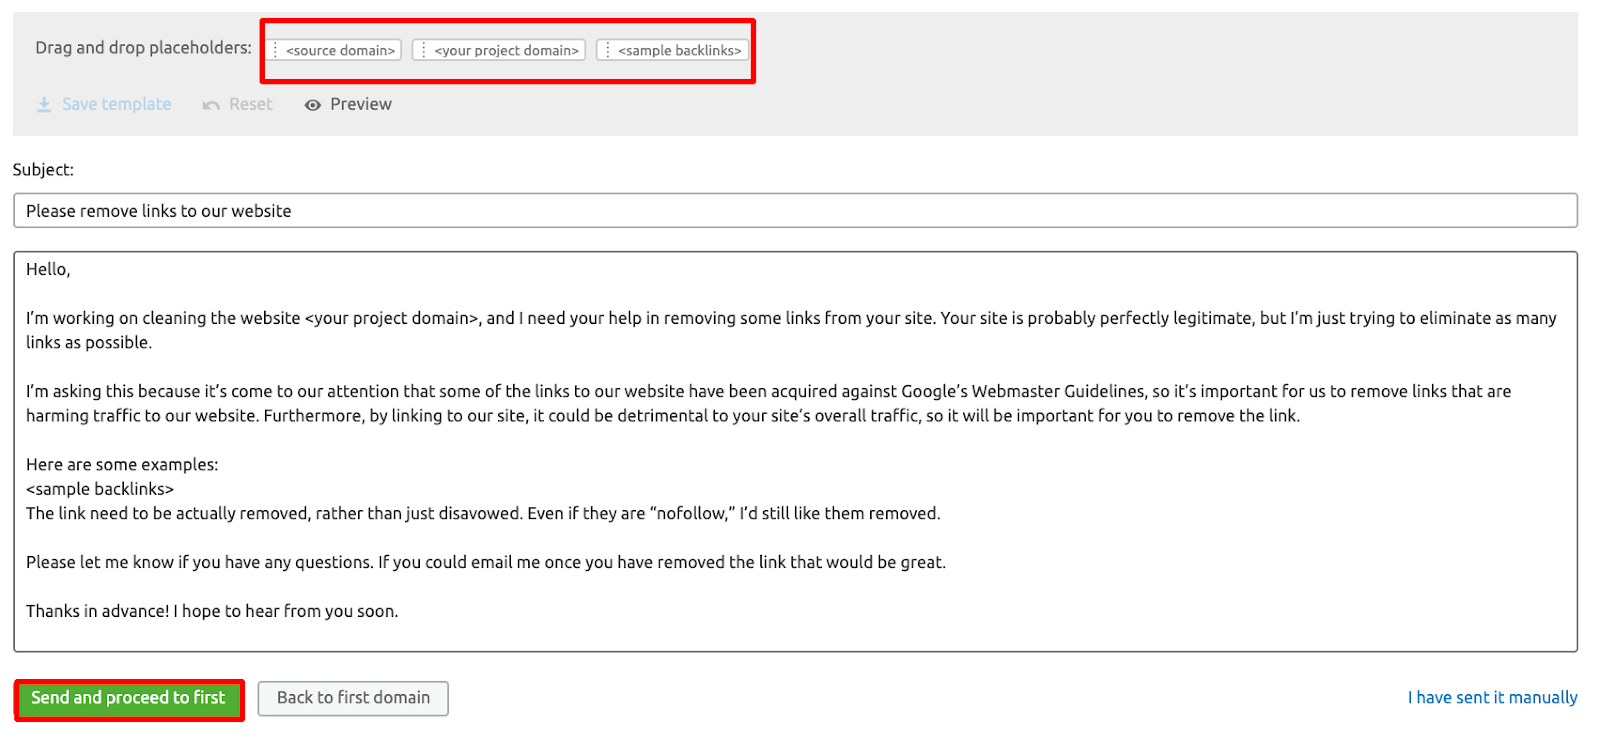 Email template example from the SEMrush Backlink Audit tool